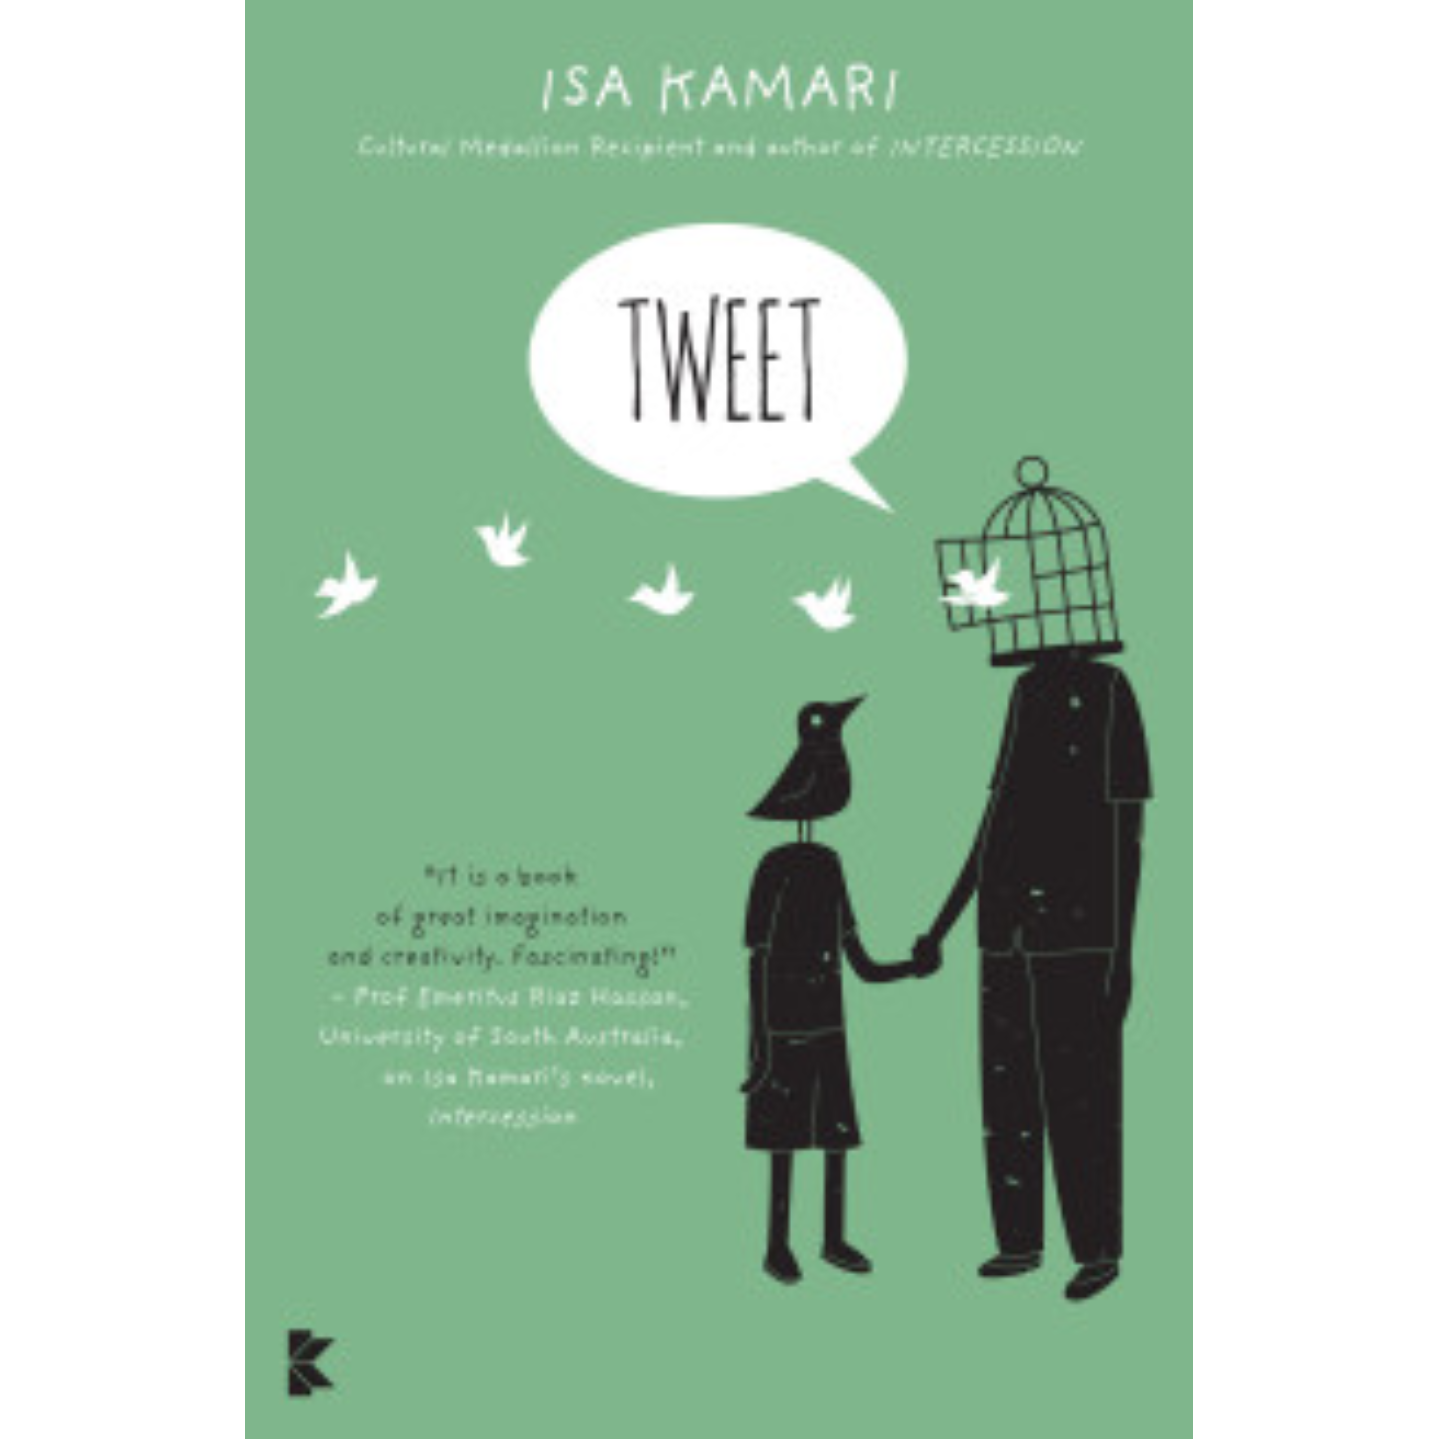 Tweet by Isa Kamari